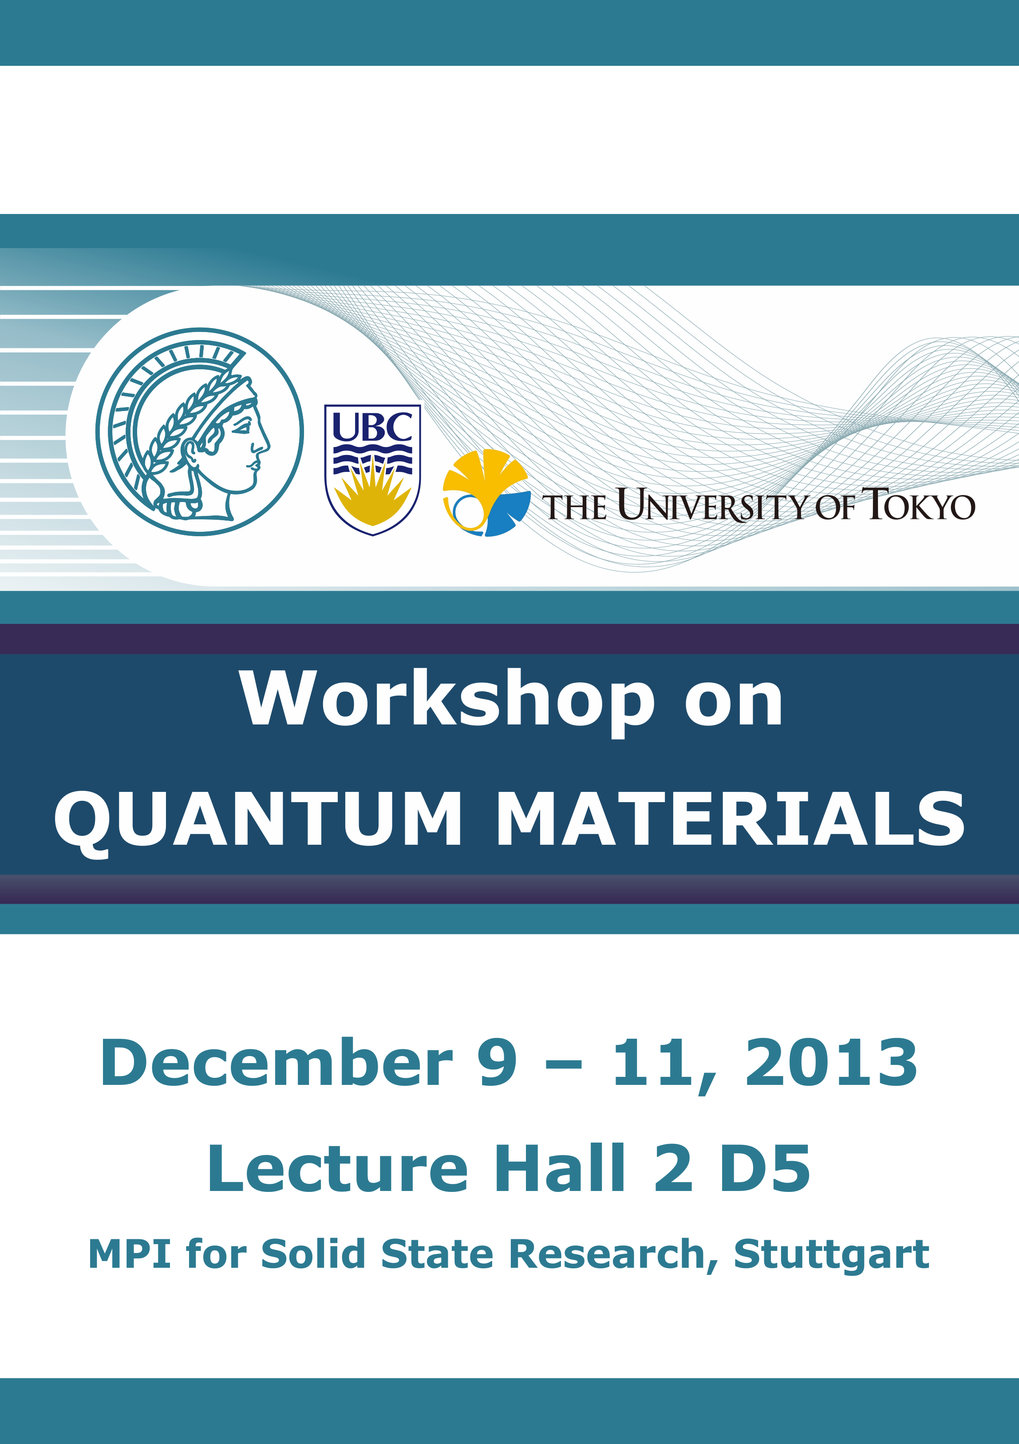 """Quantum Materials"", December 9 - 11, 2013. The workshop is intended to review current activities at the Max Planck - UBC Center and introduce research on quantum materials at the three participating institutions."